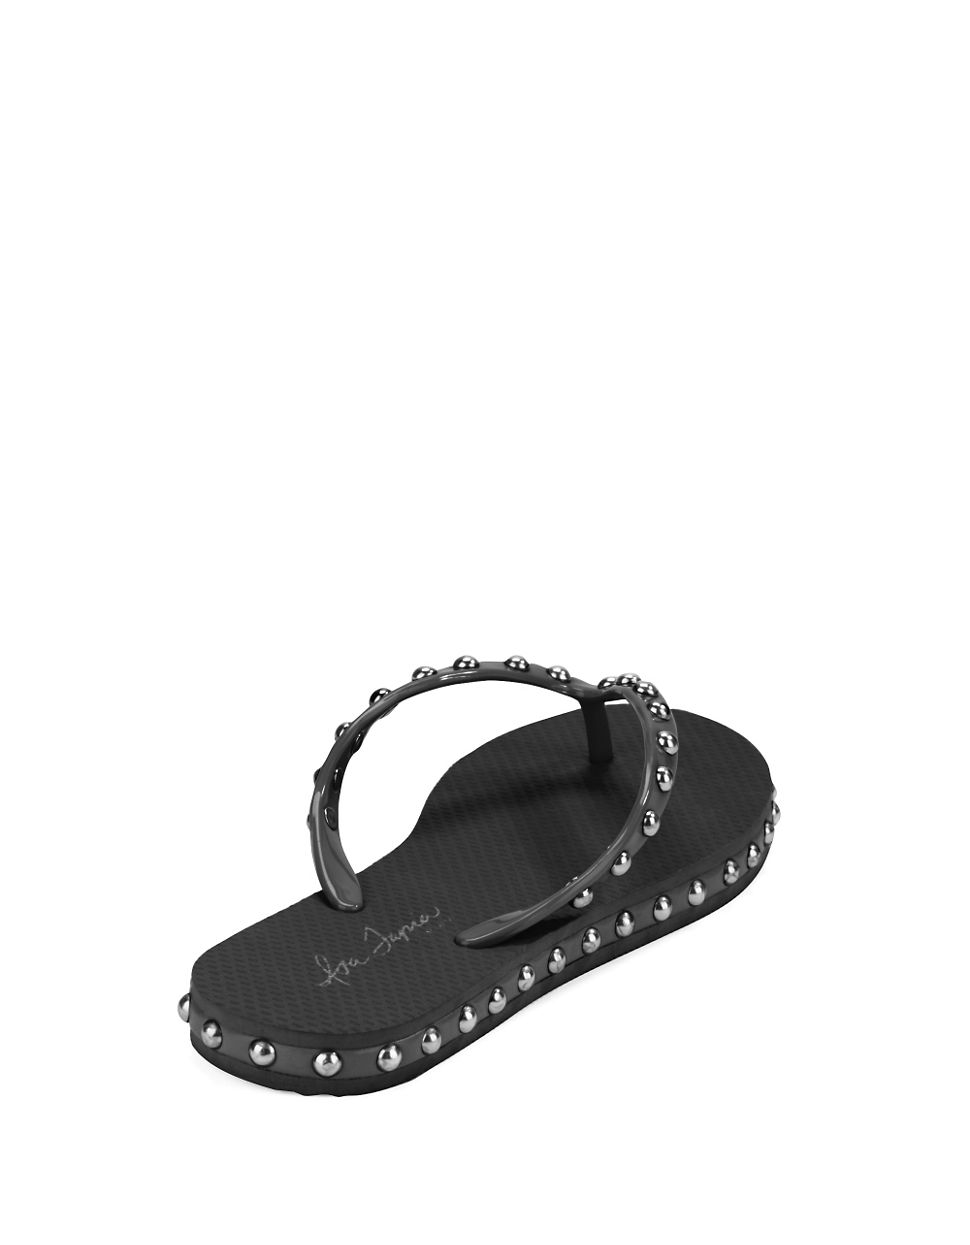 Isa Tapia Kate Studded Flip Flops In Black - Lyst-8956